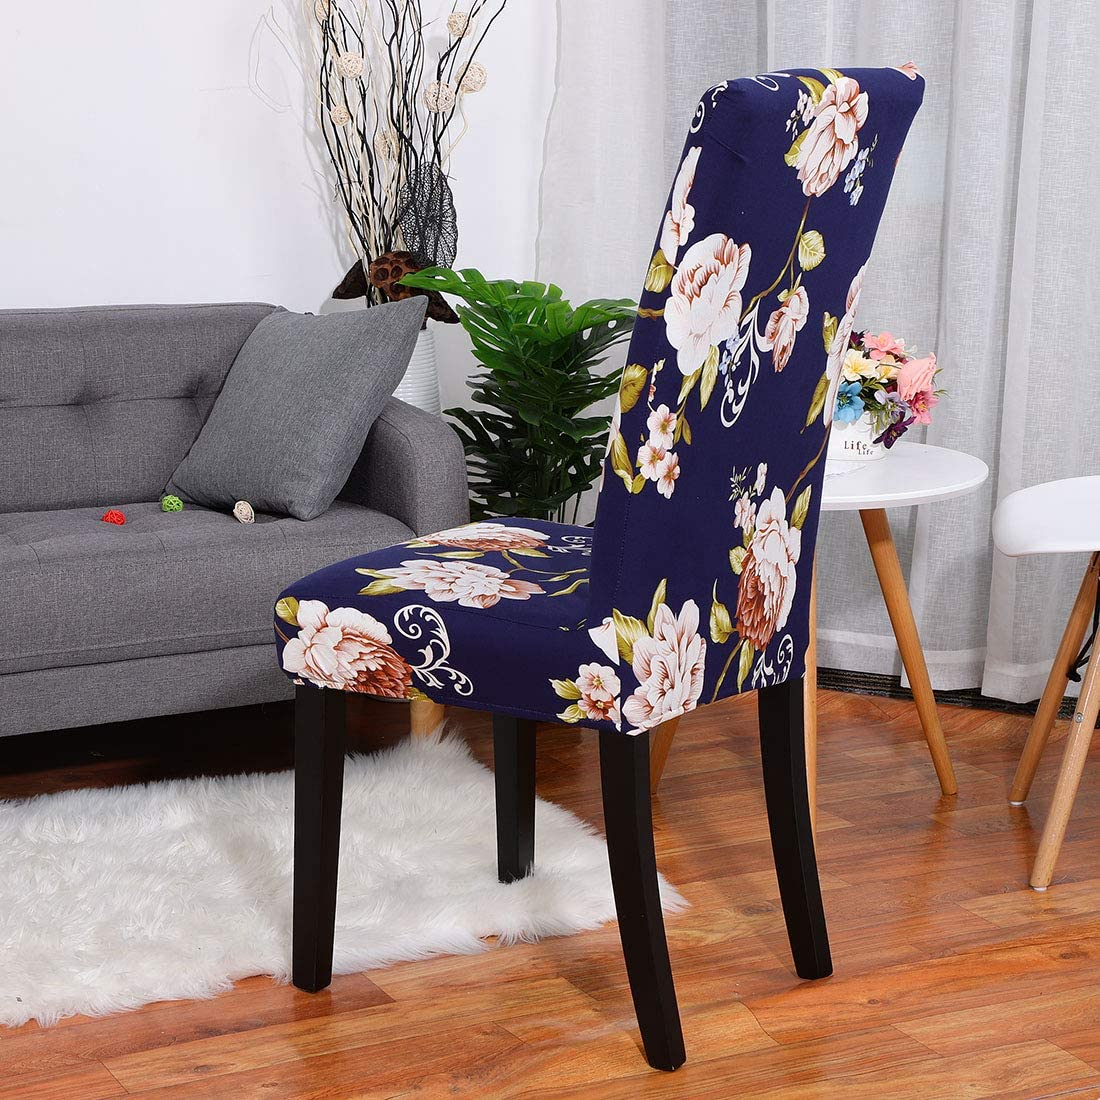 PiccoCasa Floral Print Spandex Chair Covers Fit Home Dining Room Seat Slipcover, Style 37 Navy Blue+pink+green